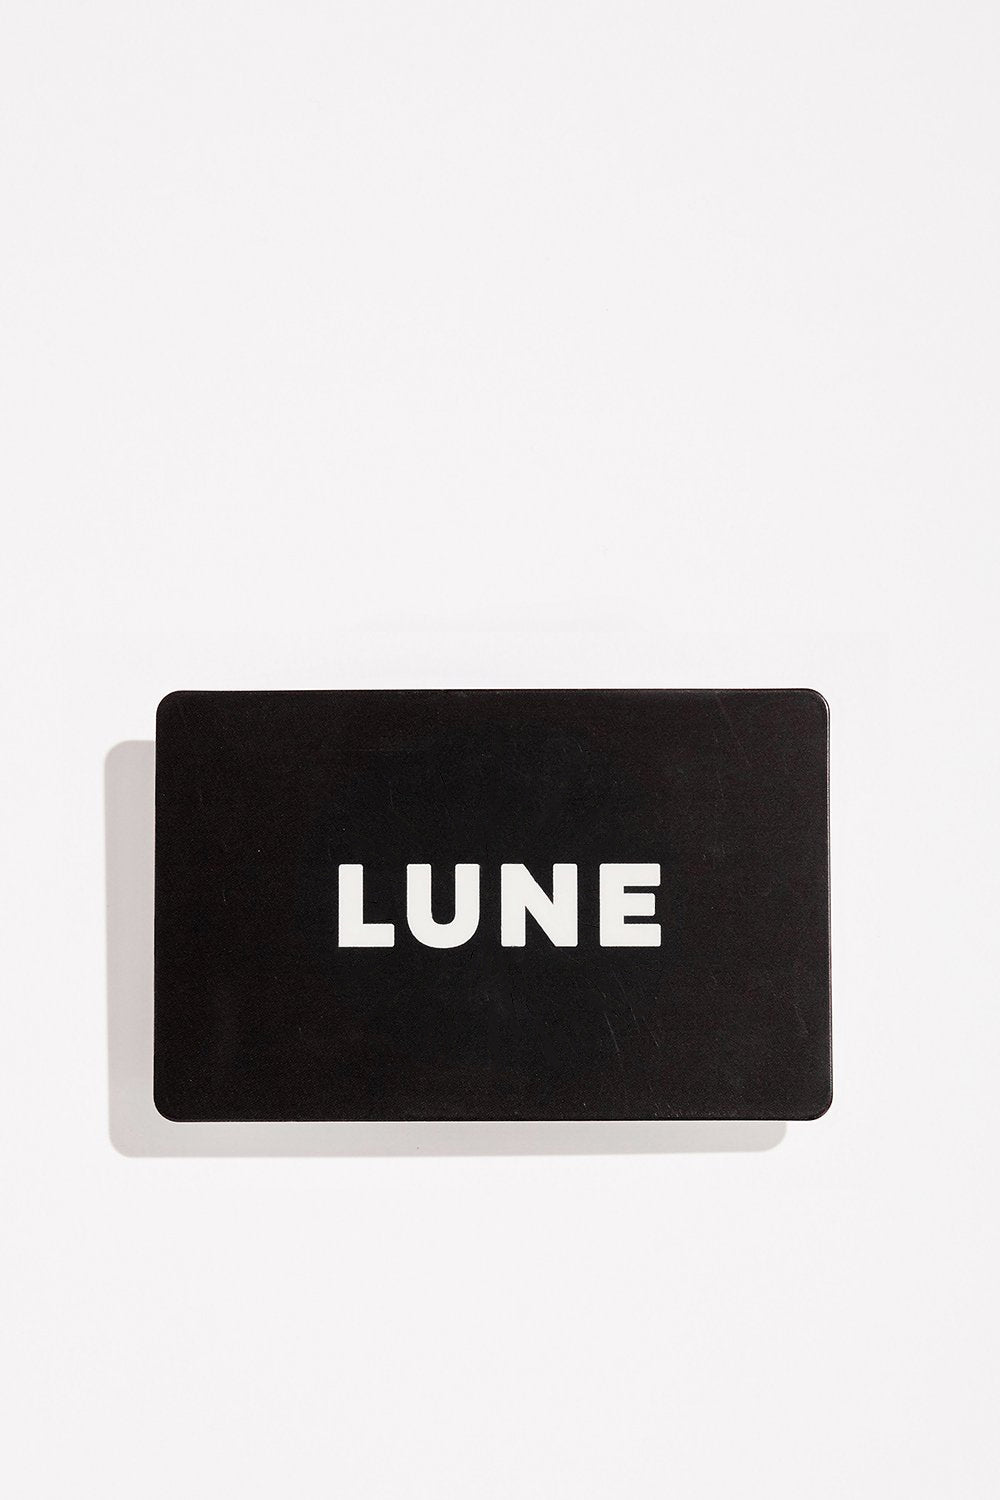 Lune Gift Card